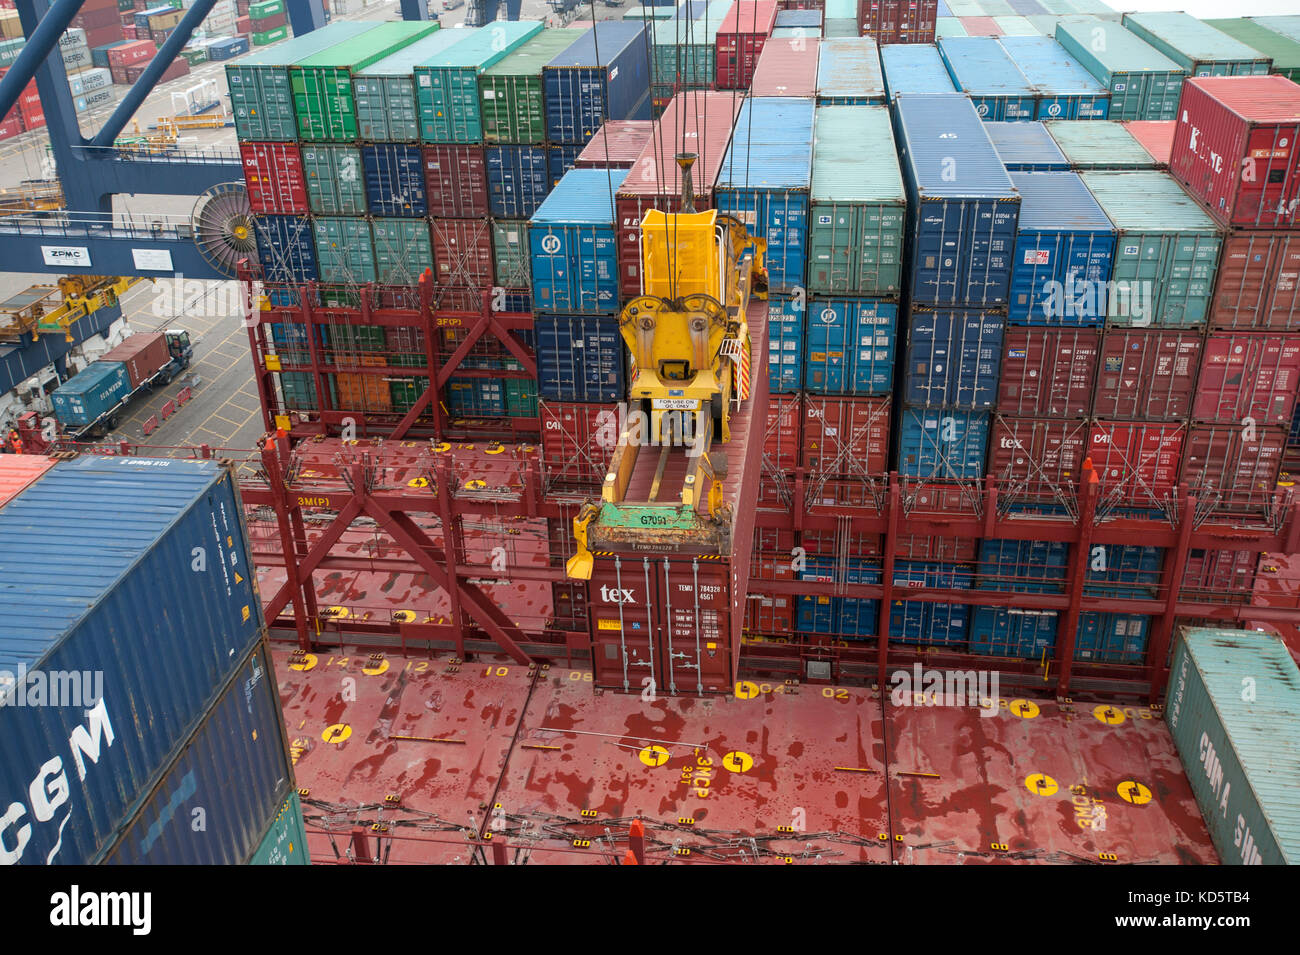 Shipping containers in container port and on-board ship - Stock Image